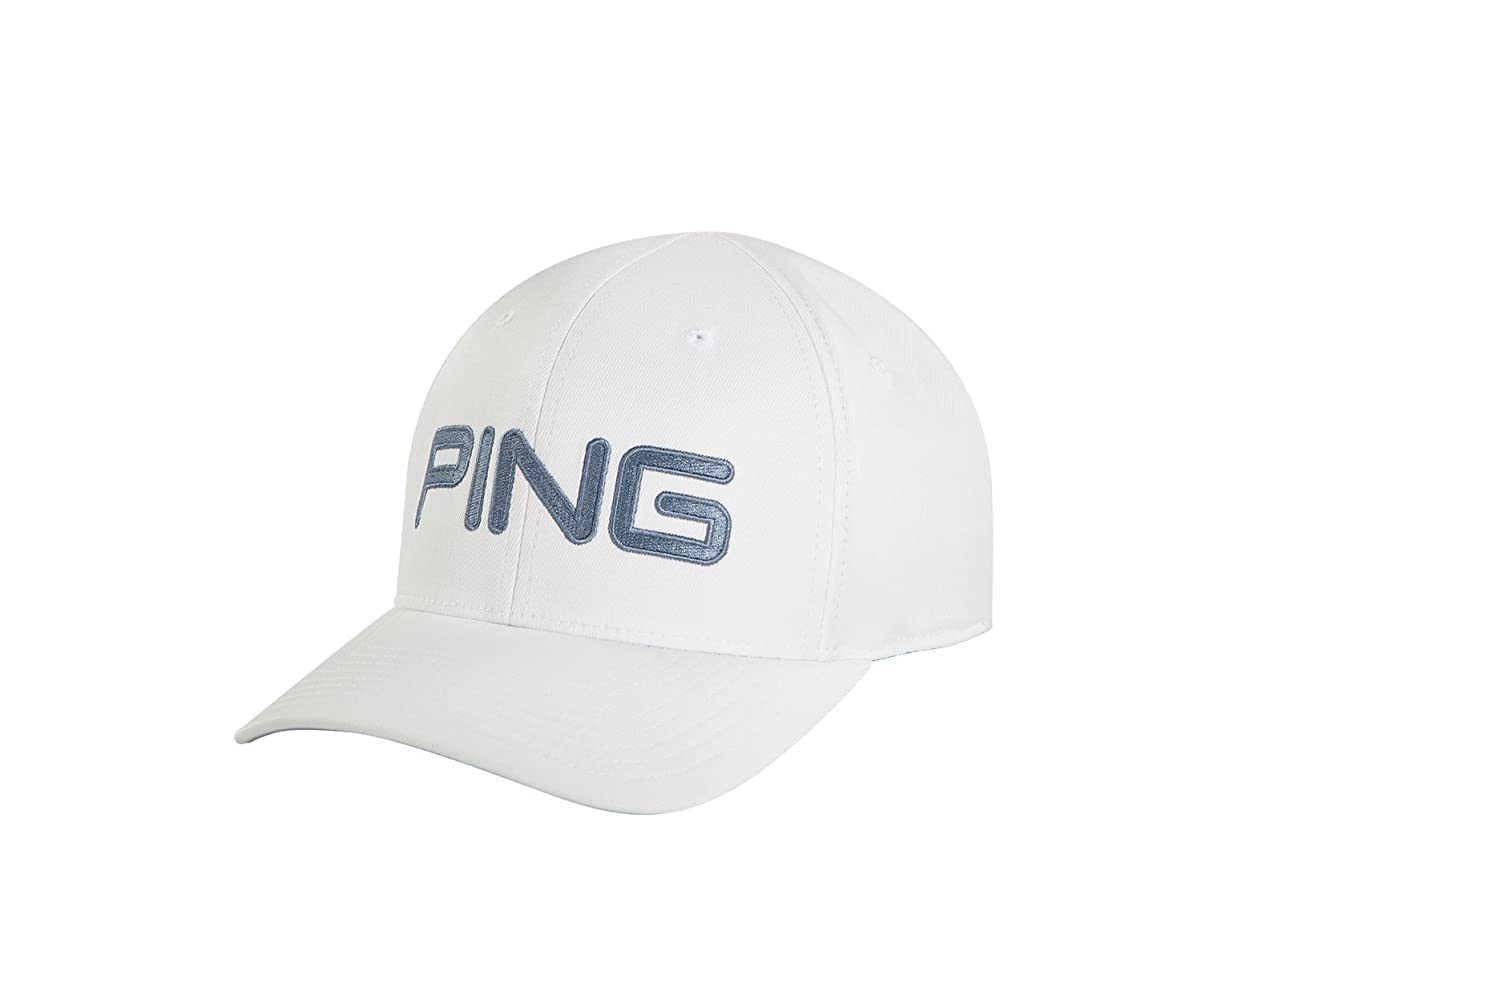 Ping 2018 Tour Structured Hat